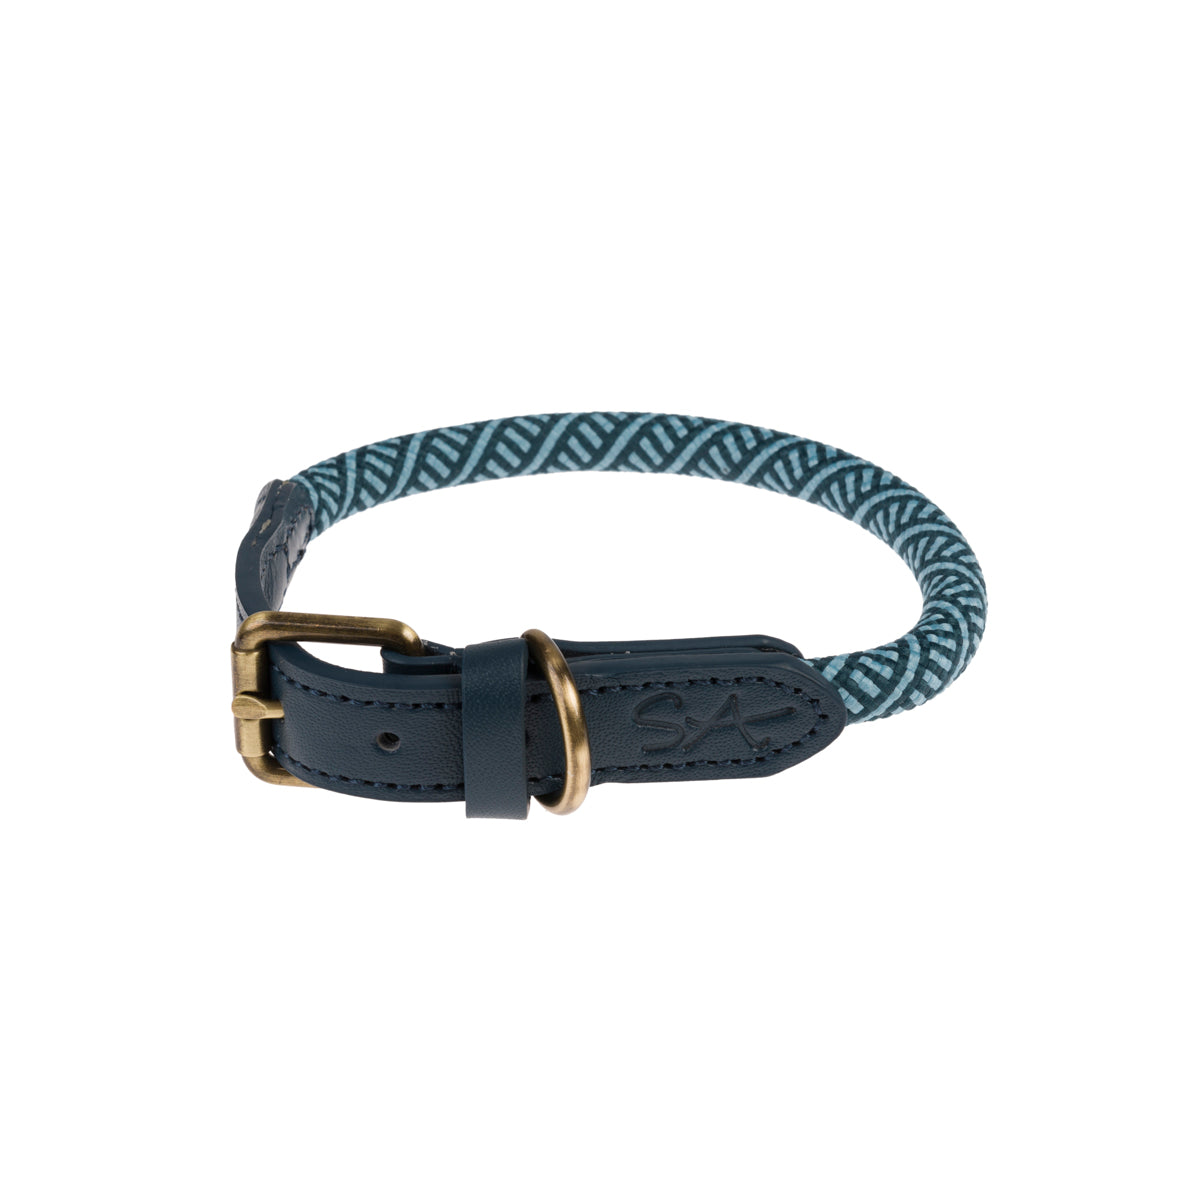 Teal Rope Collar